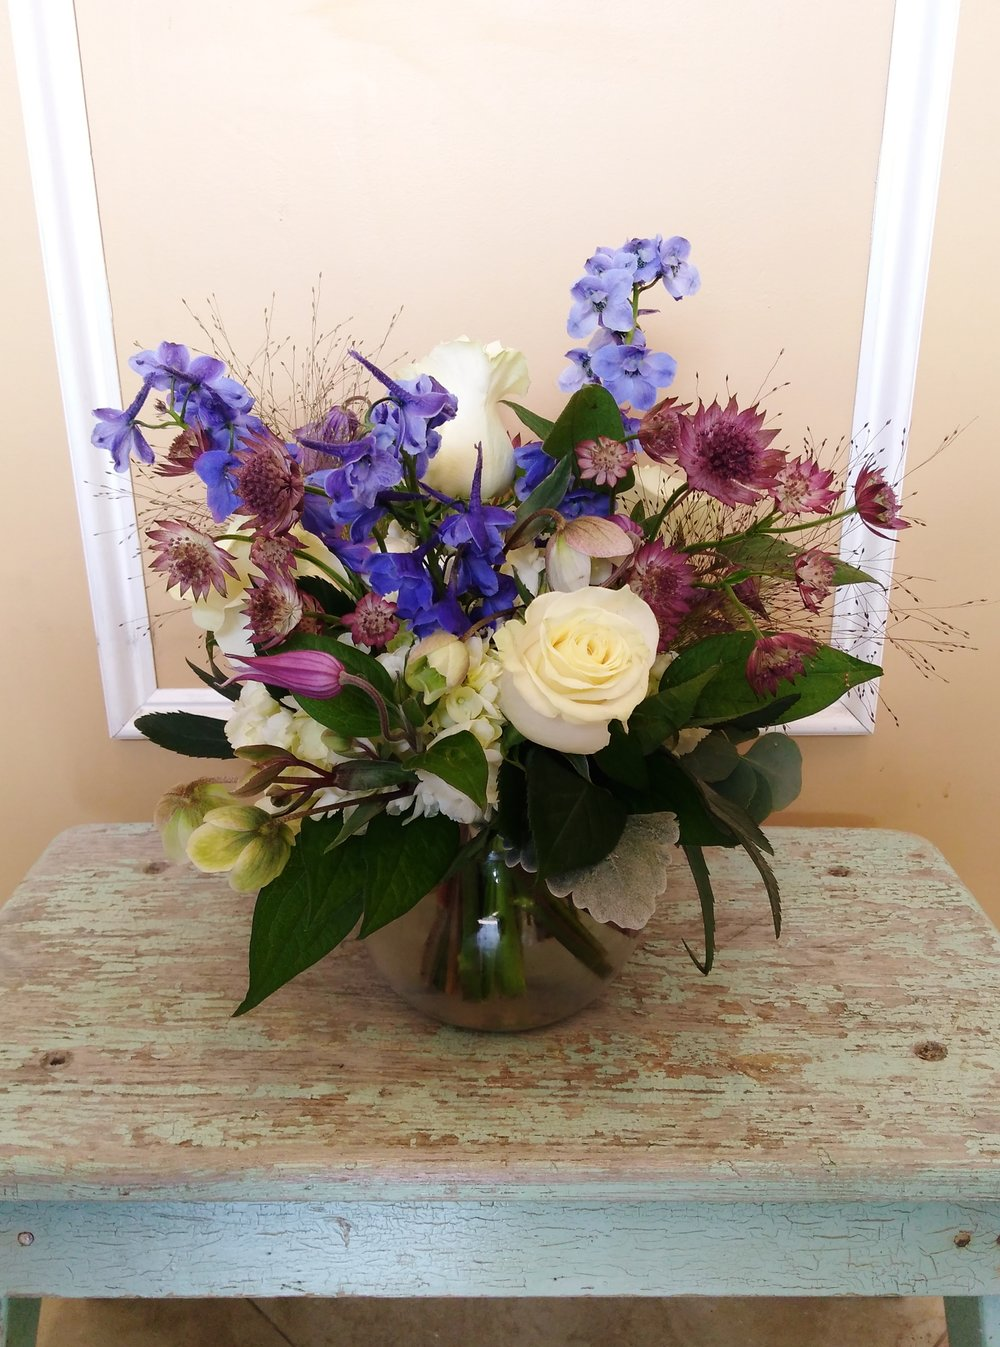 A4 $60-$85 Cluster-style arrangement. $60 as shown.